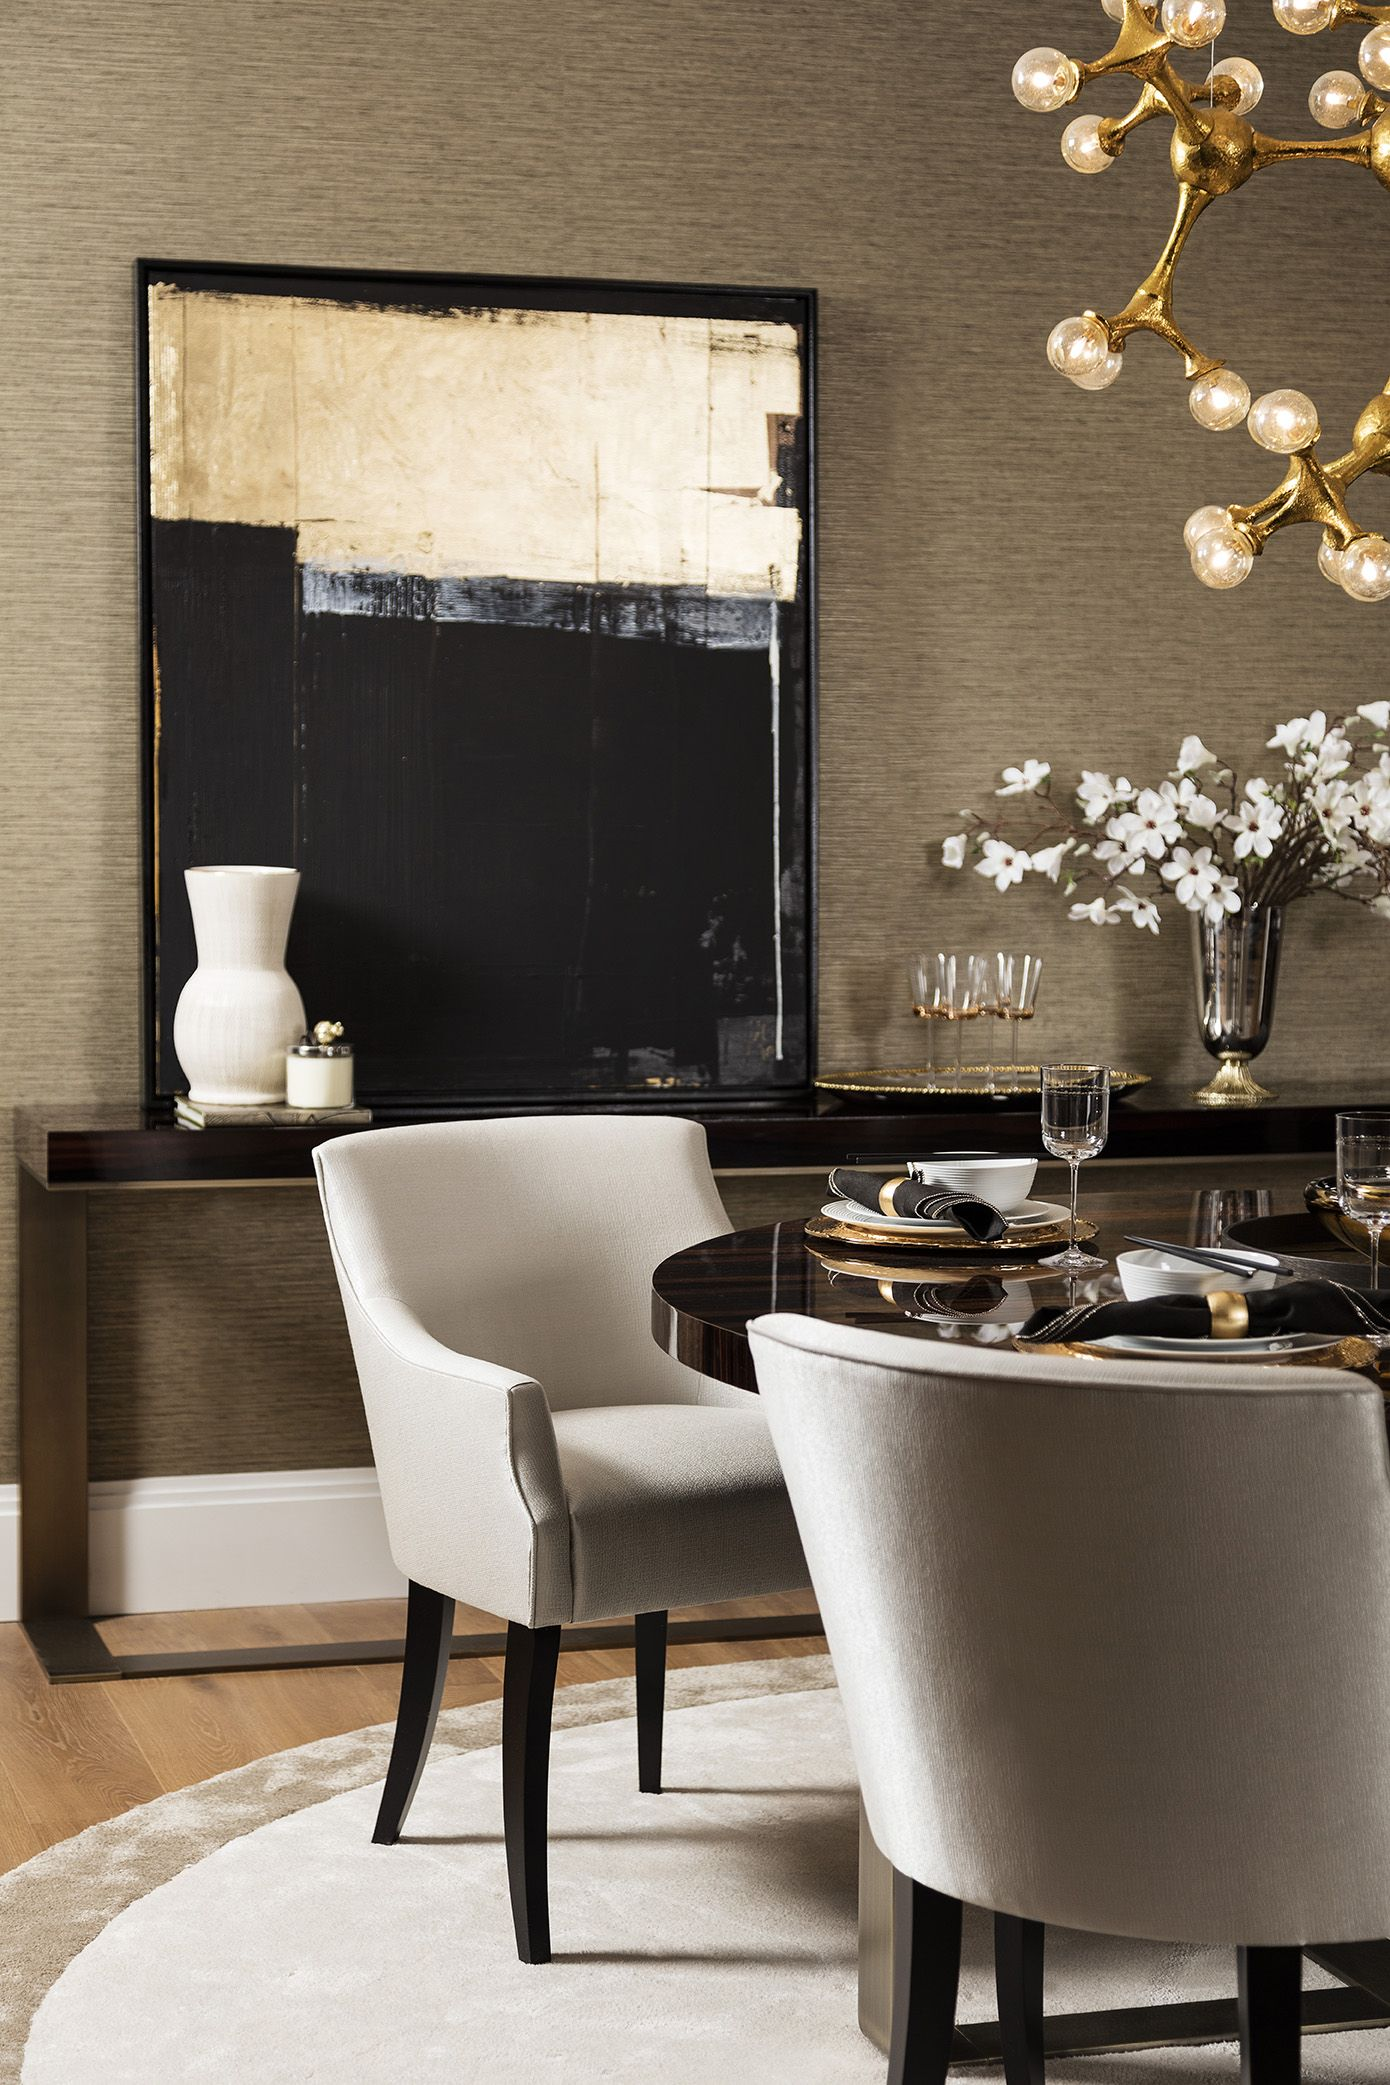 Elliot Carver Luxury Dining Room Chair An Upholstered Dining Chair Featured Here In A Textured Sate Dining Chairs Luxury Dining Room Dining Room Console Table